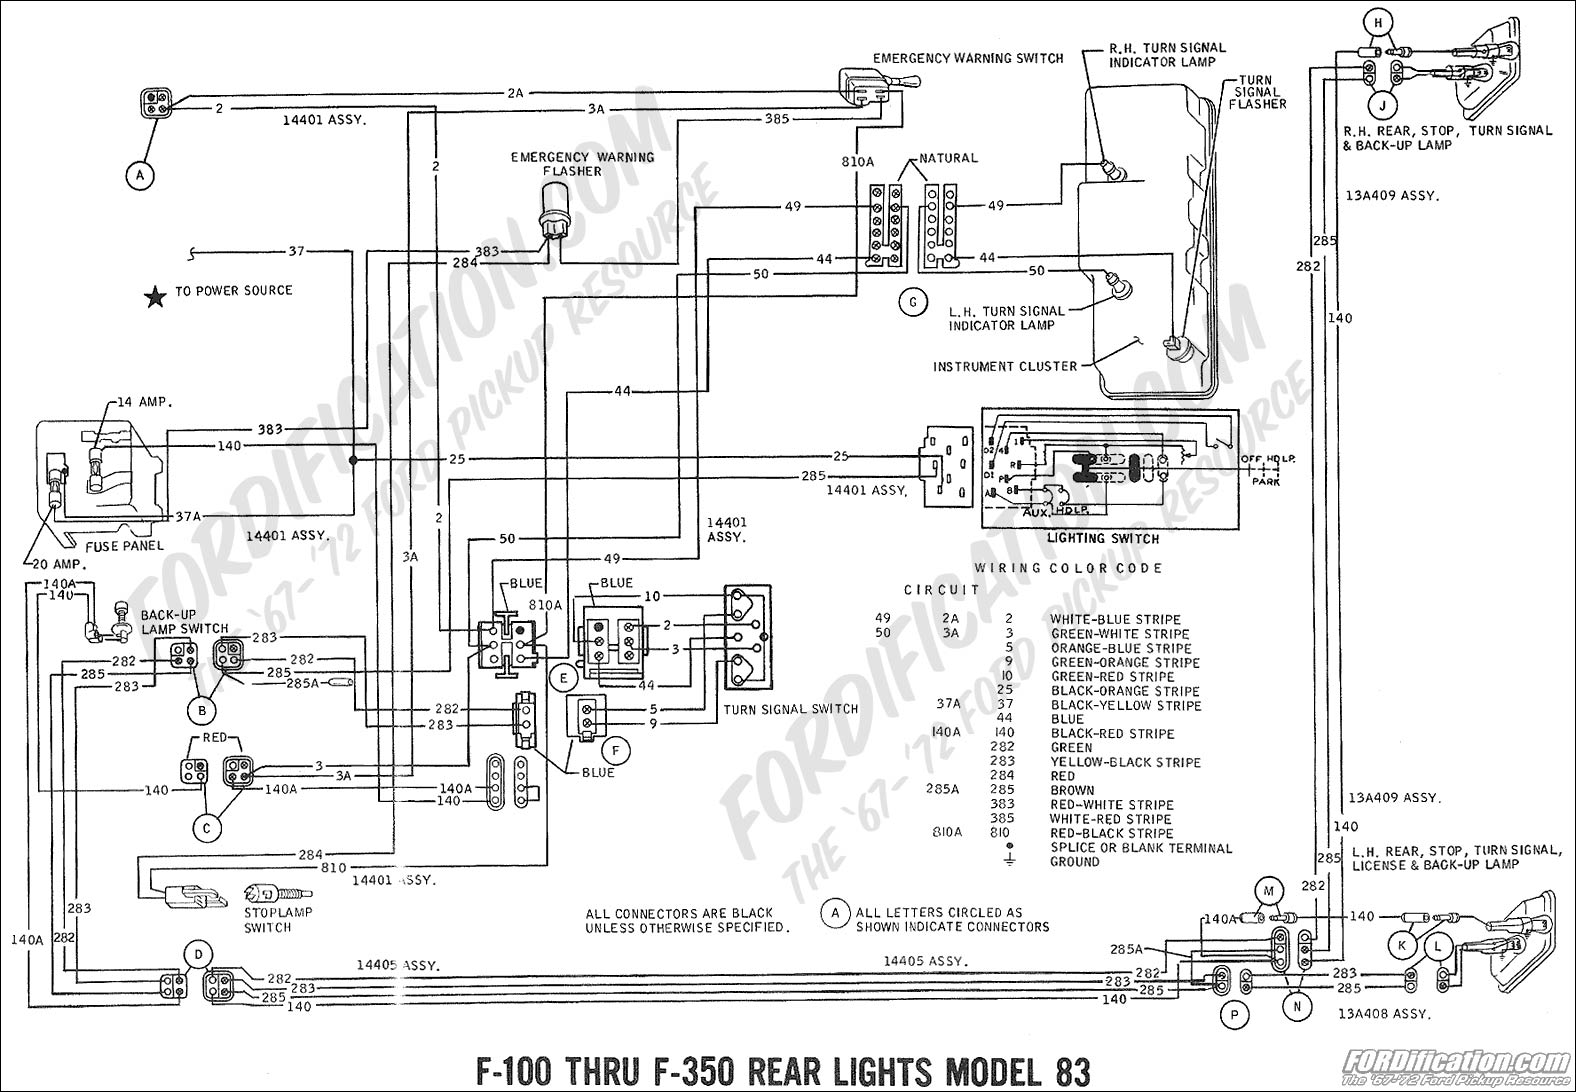 1967 Ford Falcon Diagrams - Wiring Block Diagram Au Falcon Wiring Diagram on ar diagram, pe diagram, vg diagram, ac diagram, cd diagram, vn diagram, pt diagram, ro diagram, ba diagram,